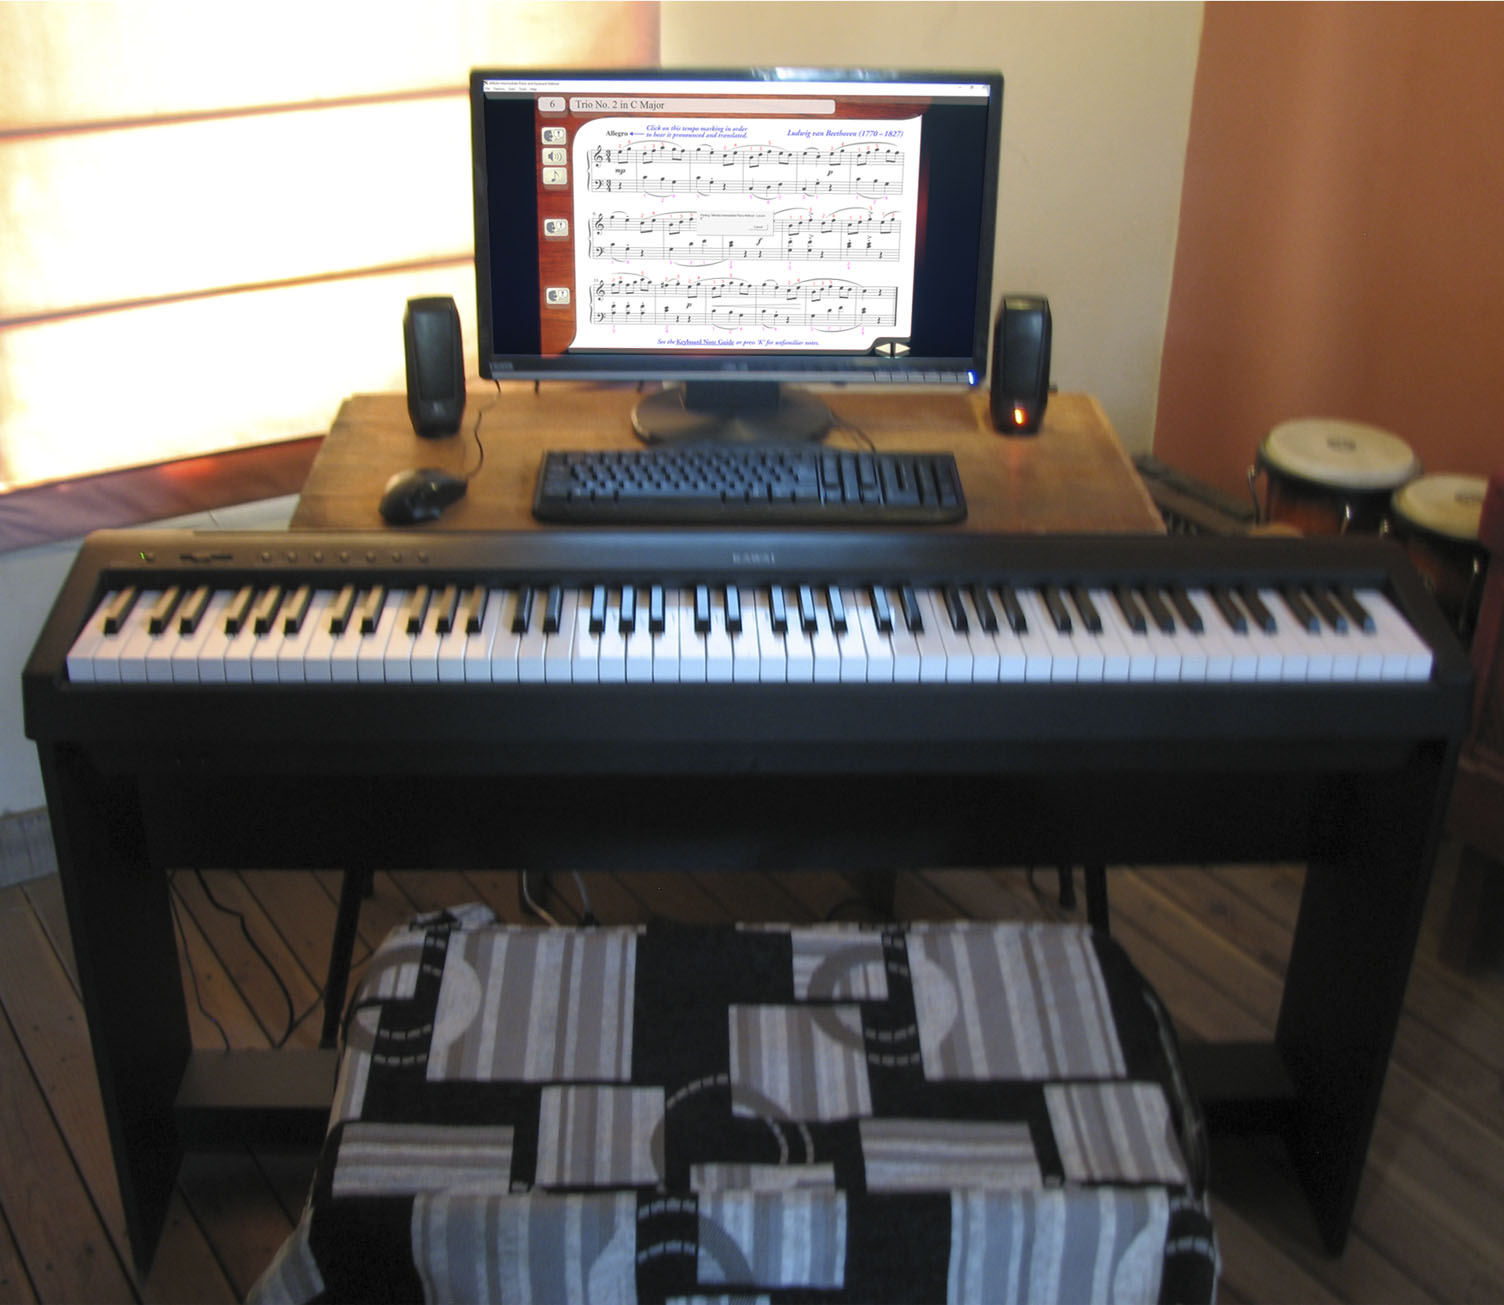 Piano workstation